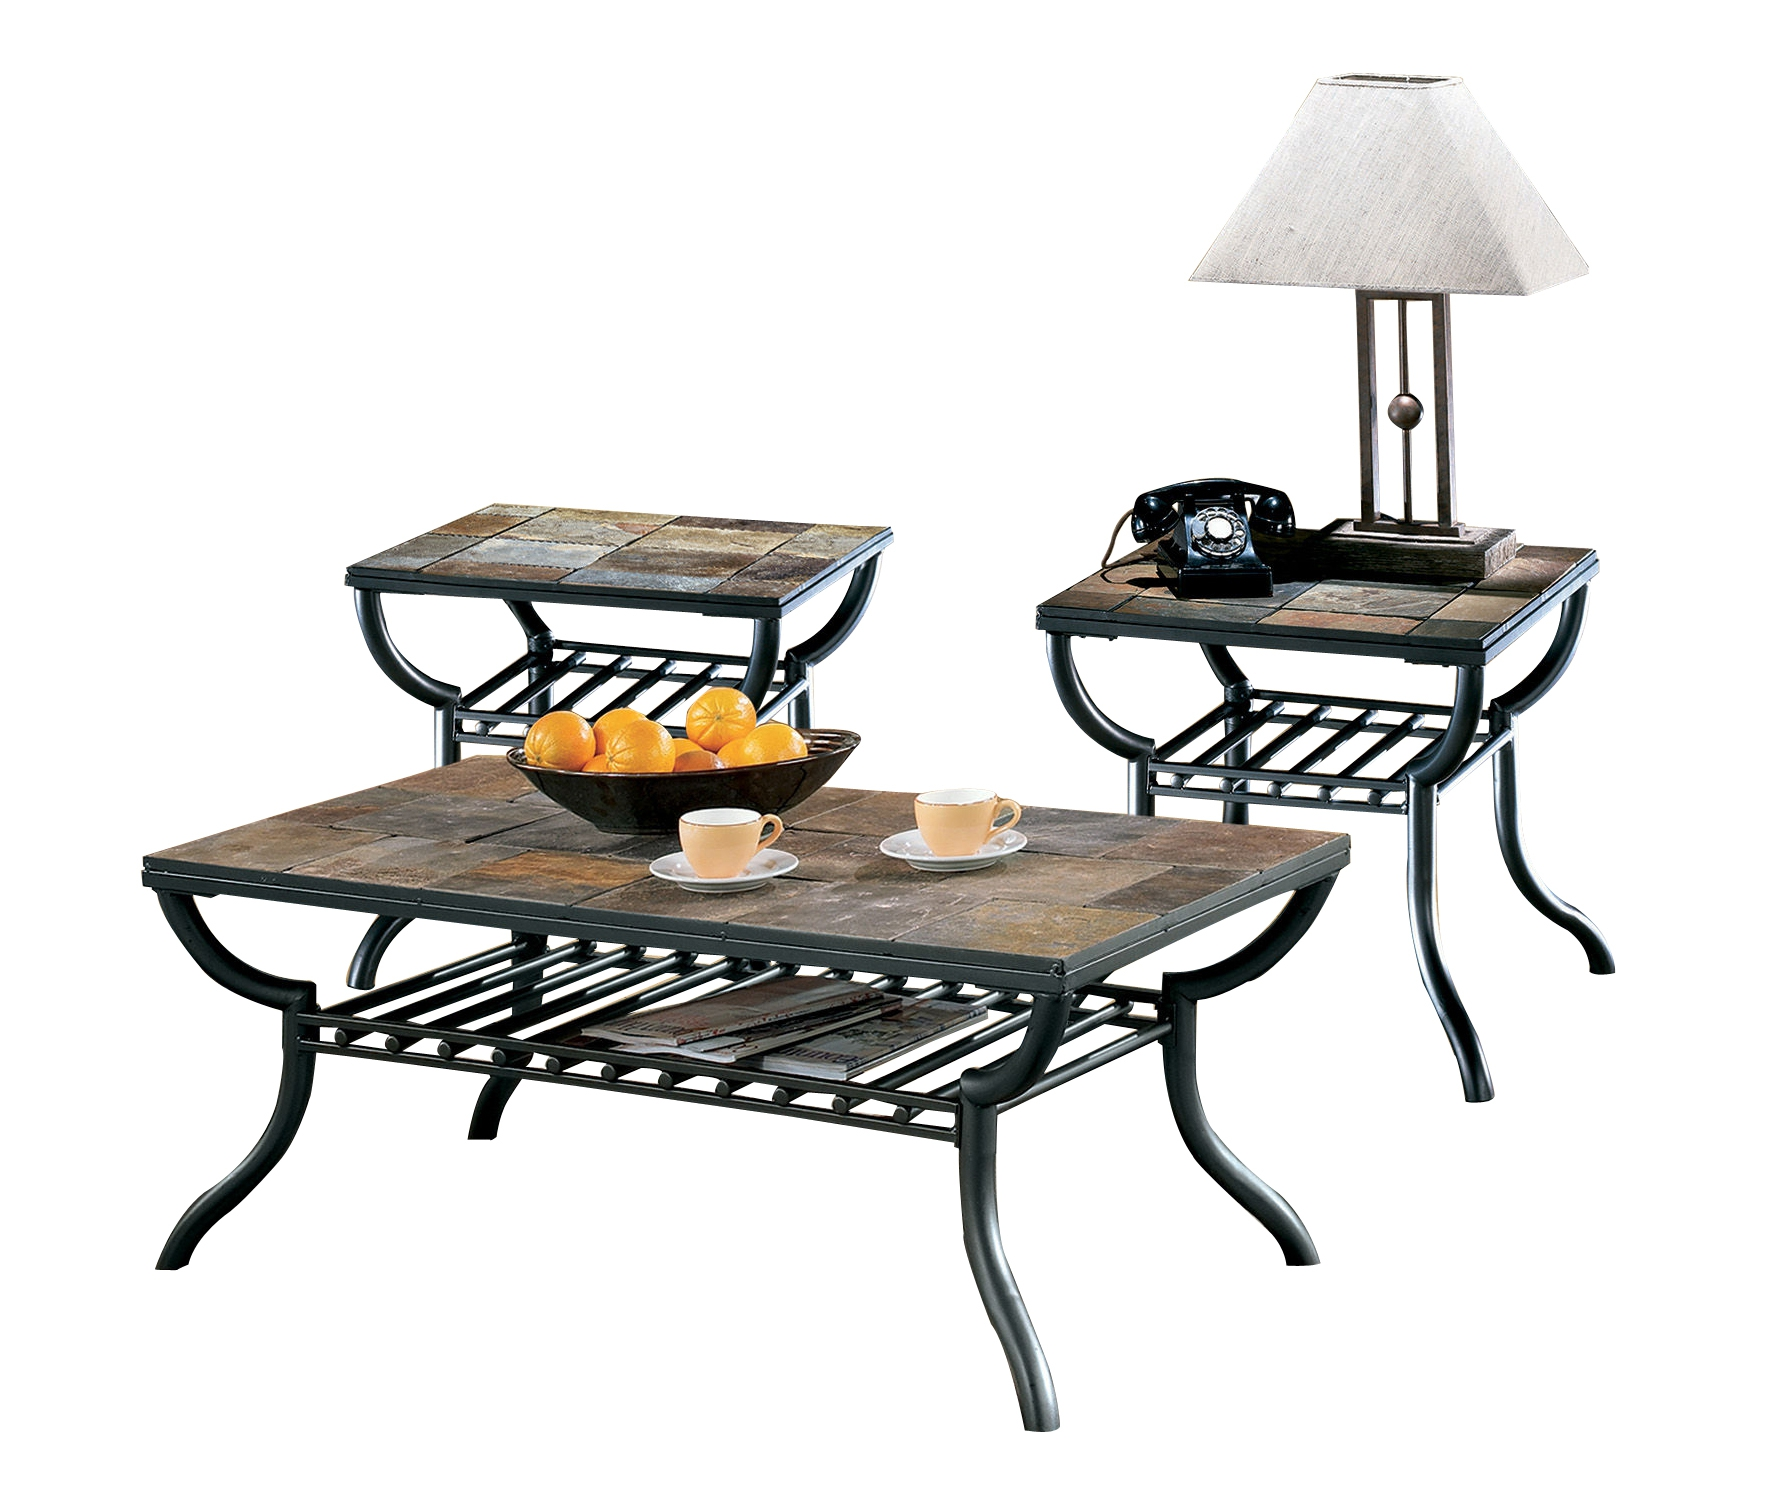 Ashley Furniture Antigo 3pc Coffee Table Set Click To Enlarge ...  sc 1 st  The Classy Home & Ashley Furniture Antigo 3pc Coffee Table Set | The Classy Home